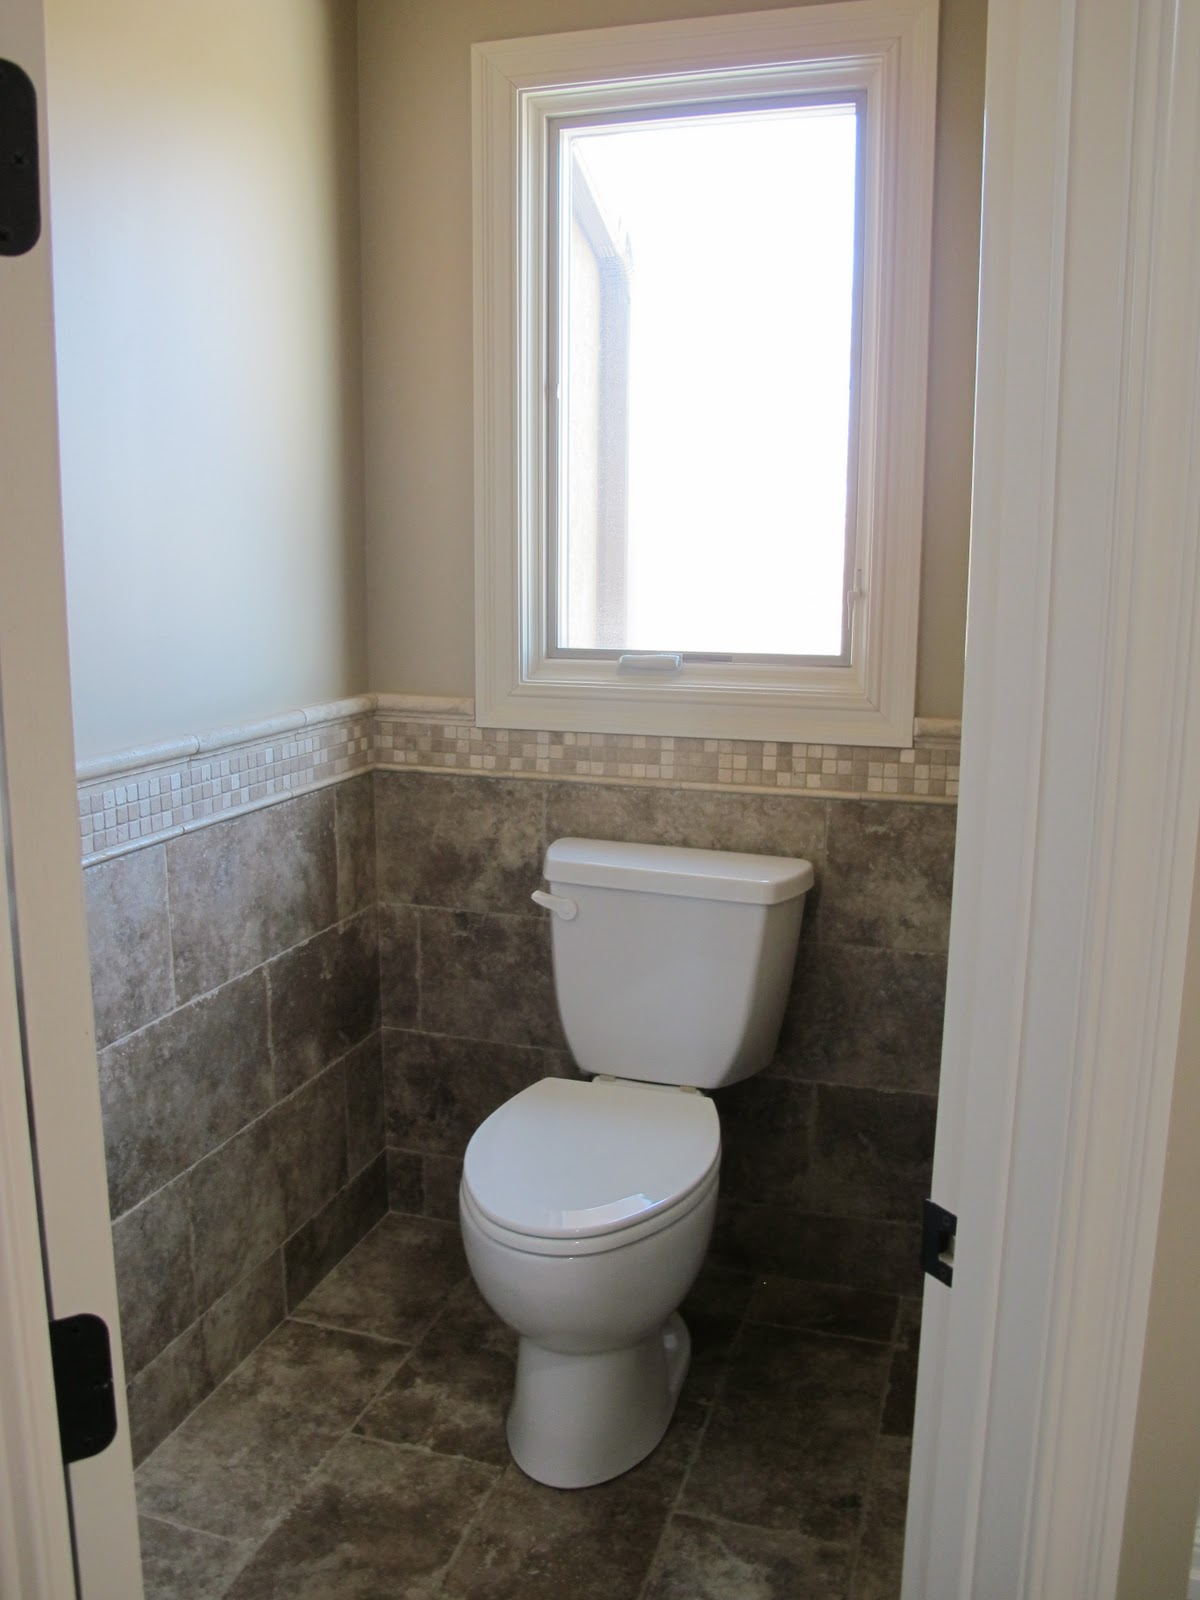 Pictures Of Chair Rails In Bathrooms Teen Bean Bag Projects Plenty Master Bath And Realization That I May